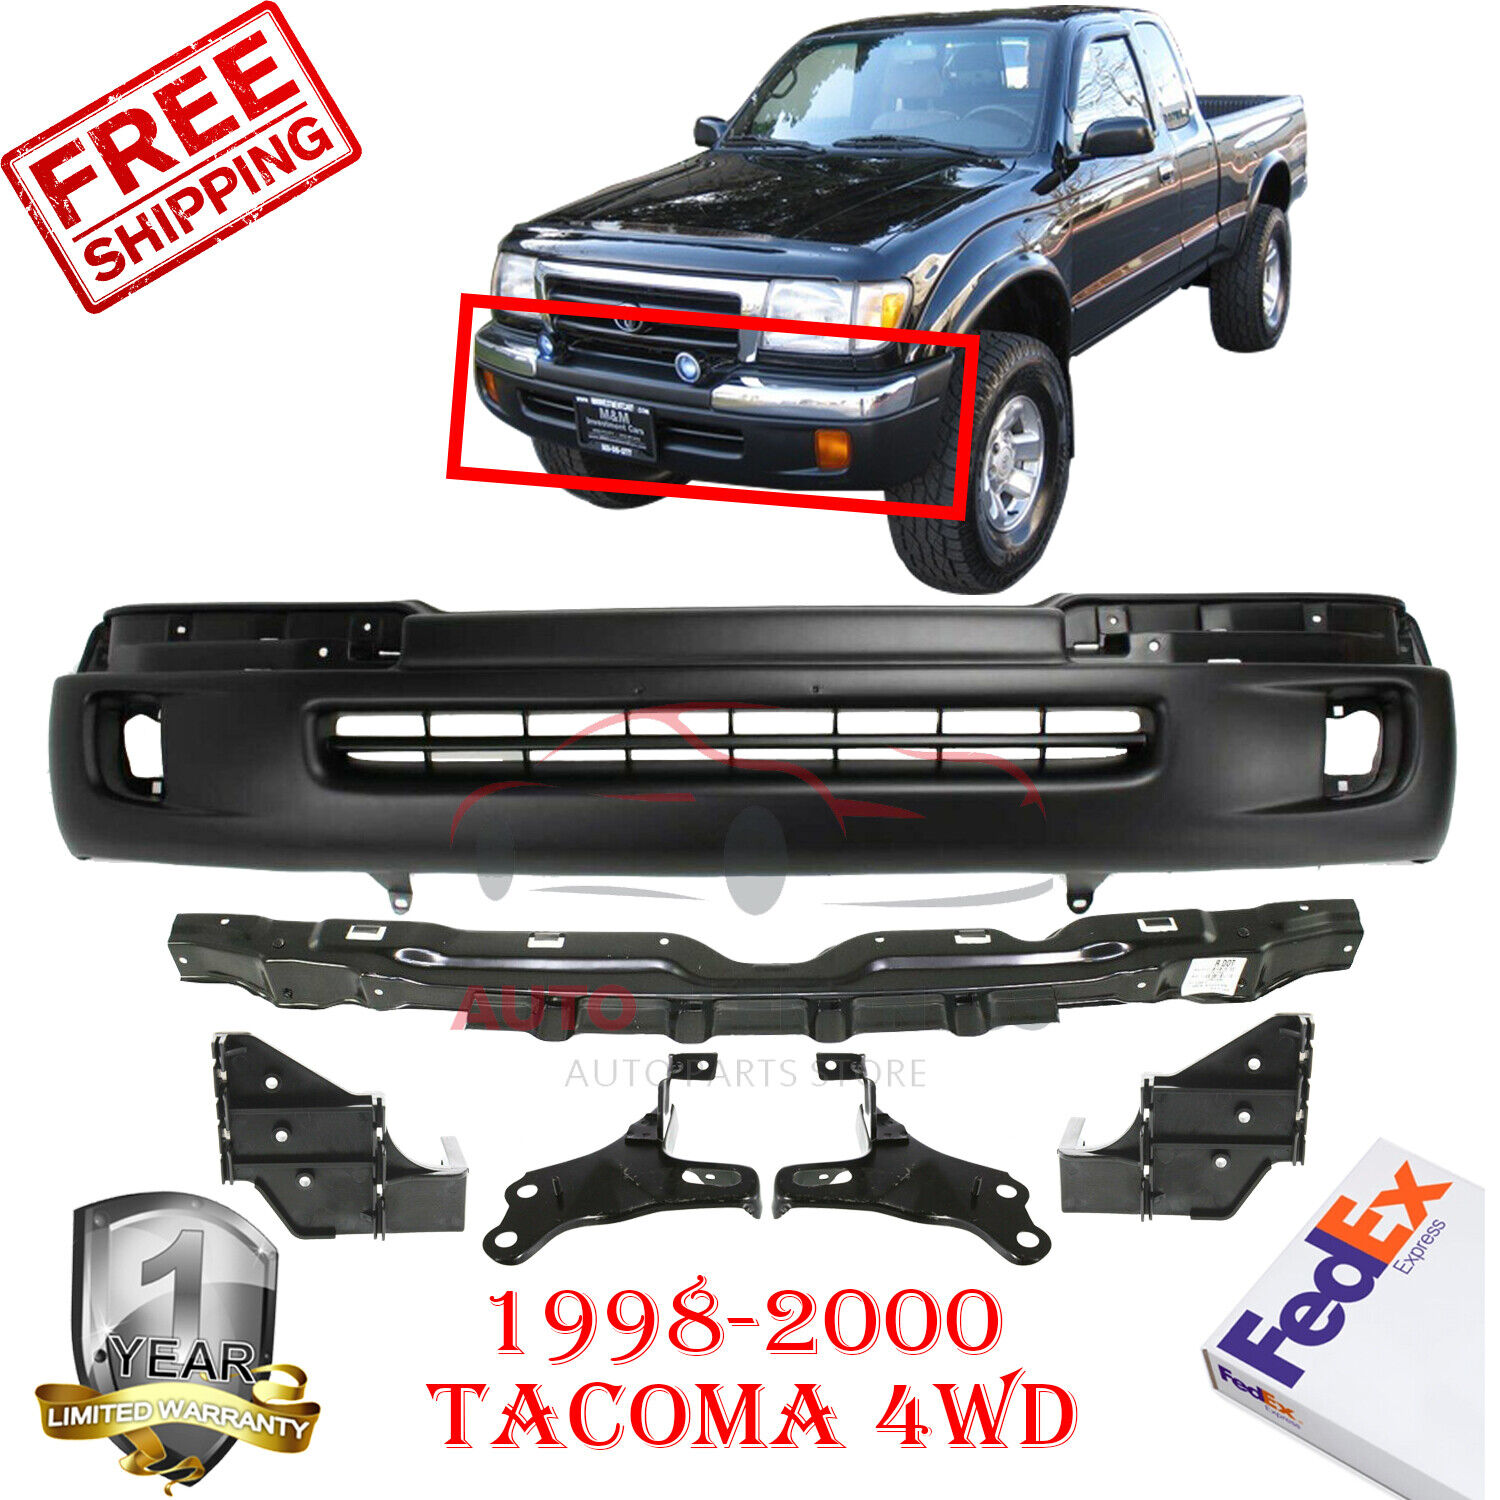 For 1998-2000 Tacoma 2Wd Prerunner Tacoma 4Wd Front Bumper Trim Cap Chrome Rh